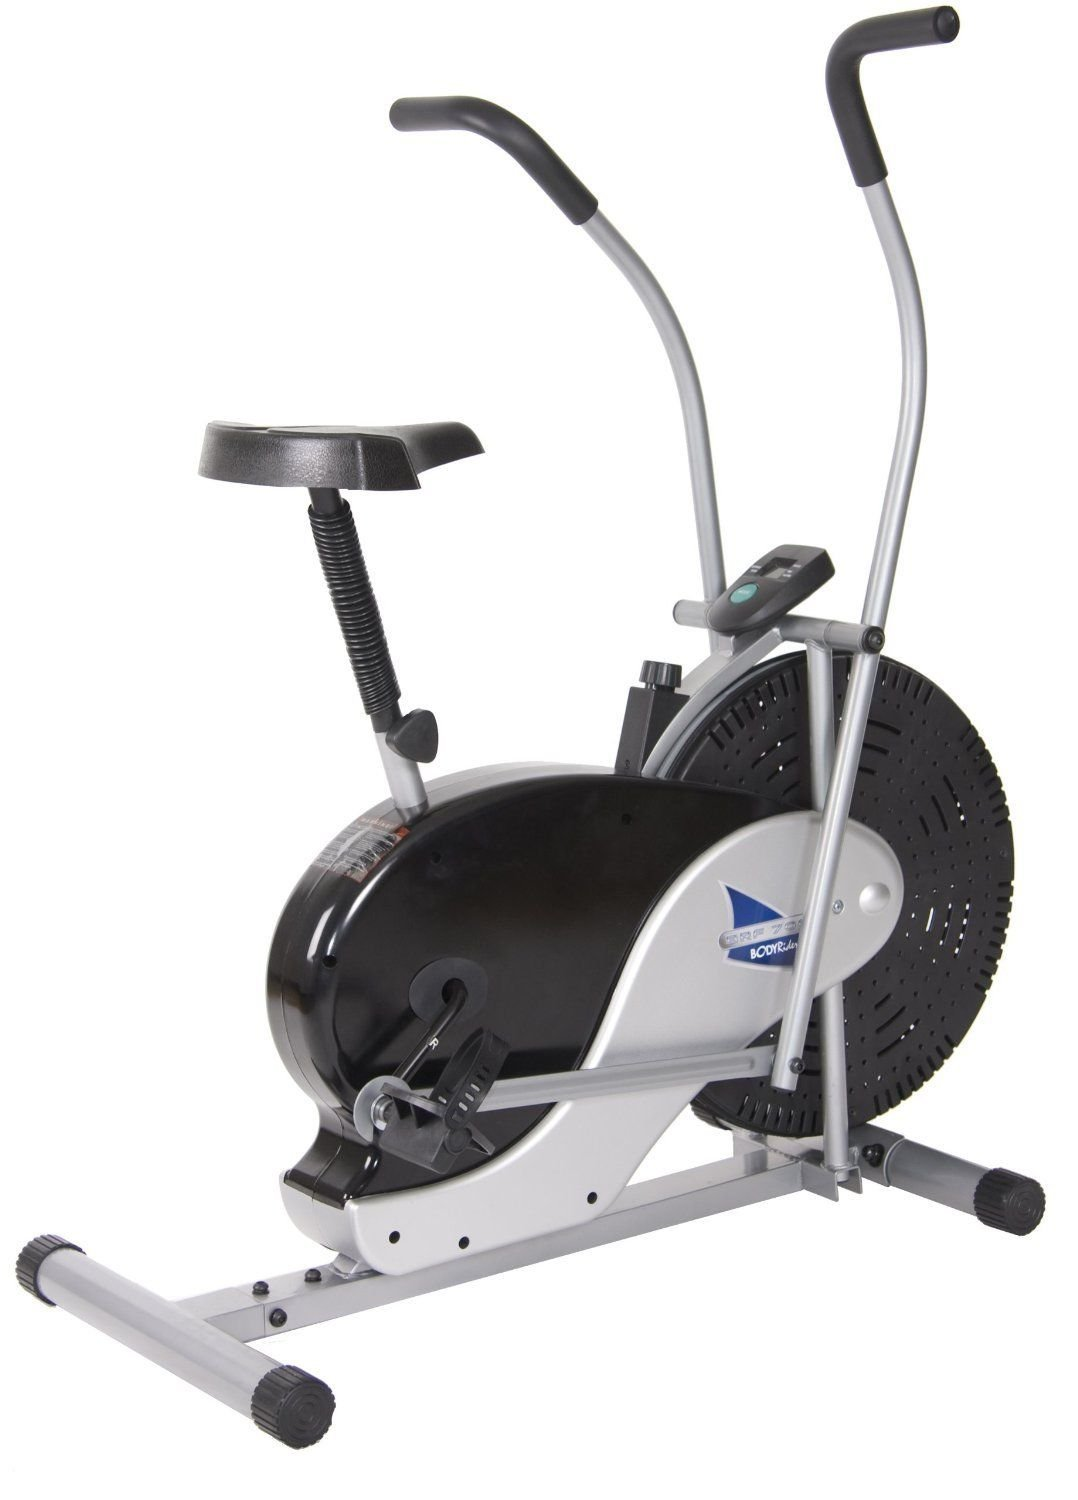 Body Max BRF700 Stationary Upright Rider Fan Bike